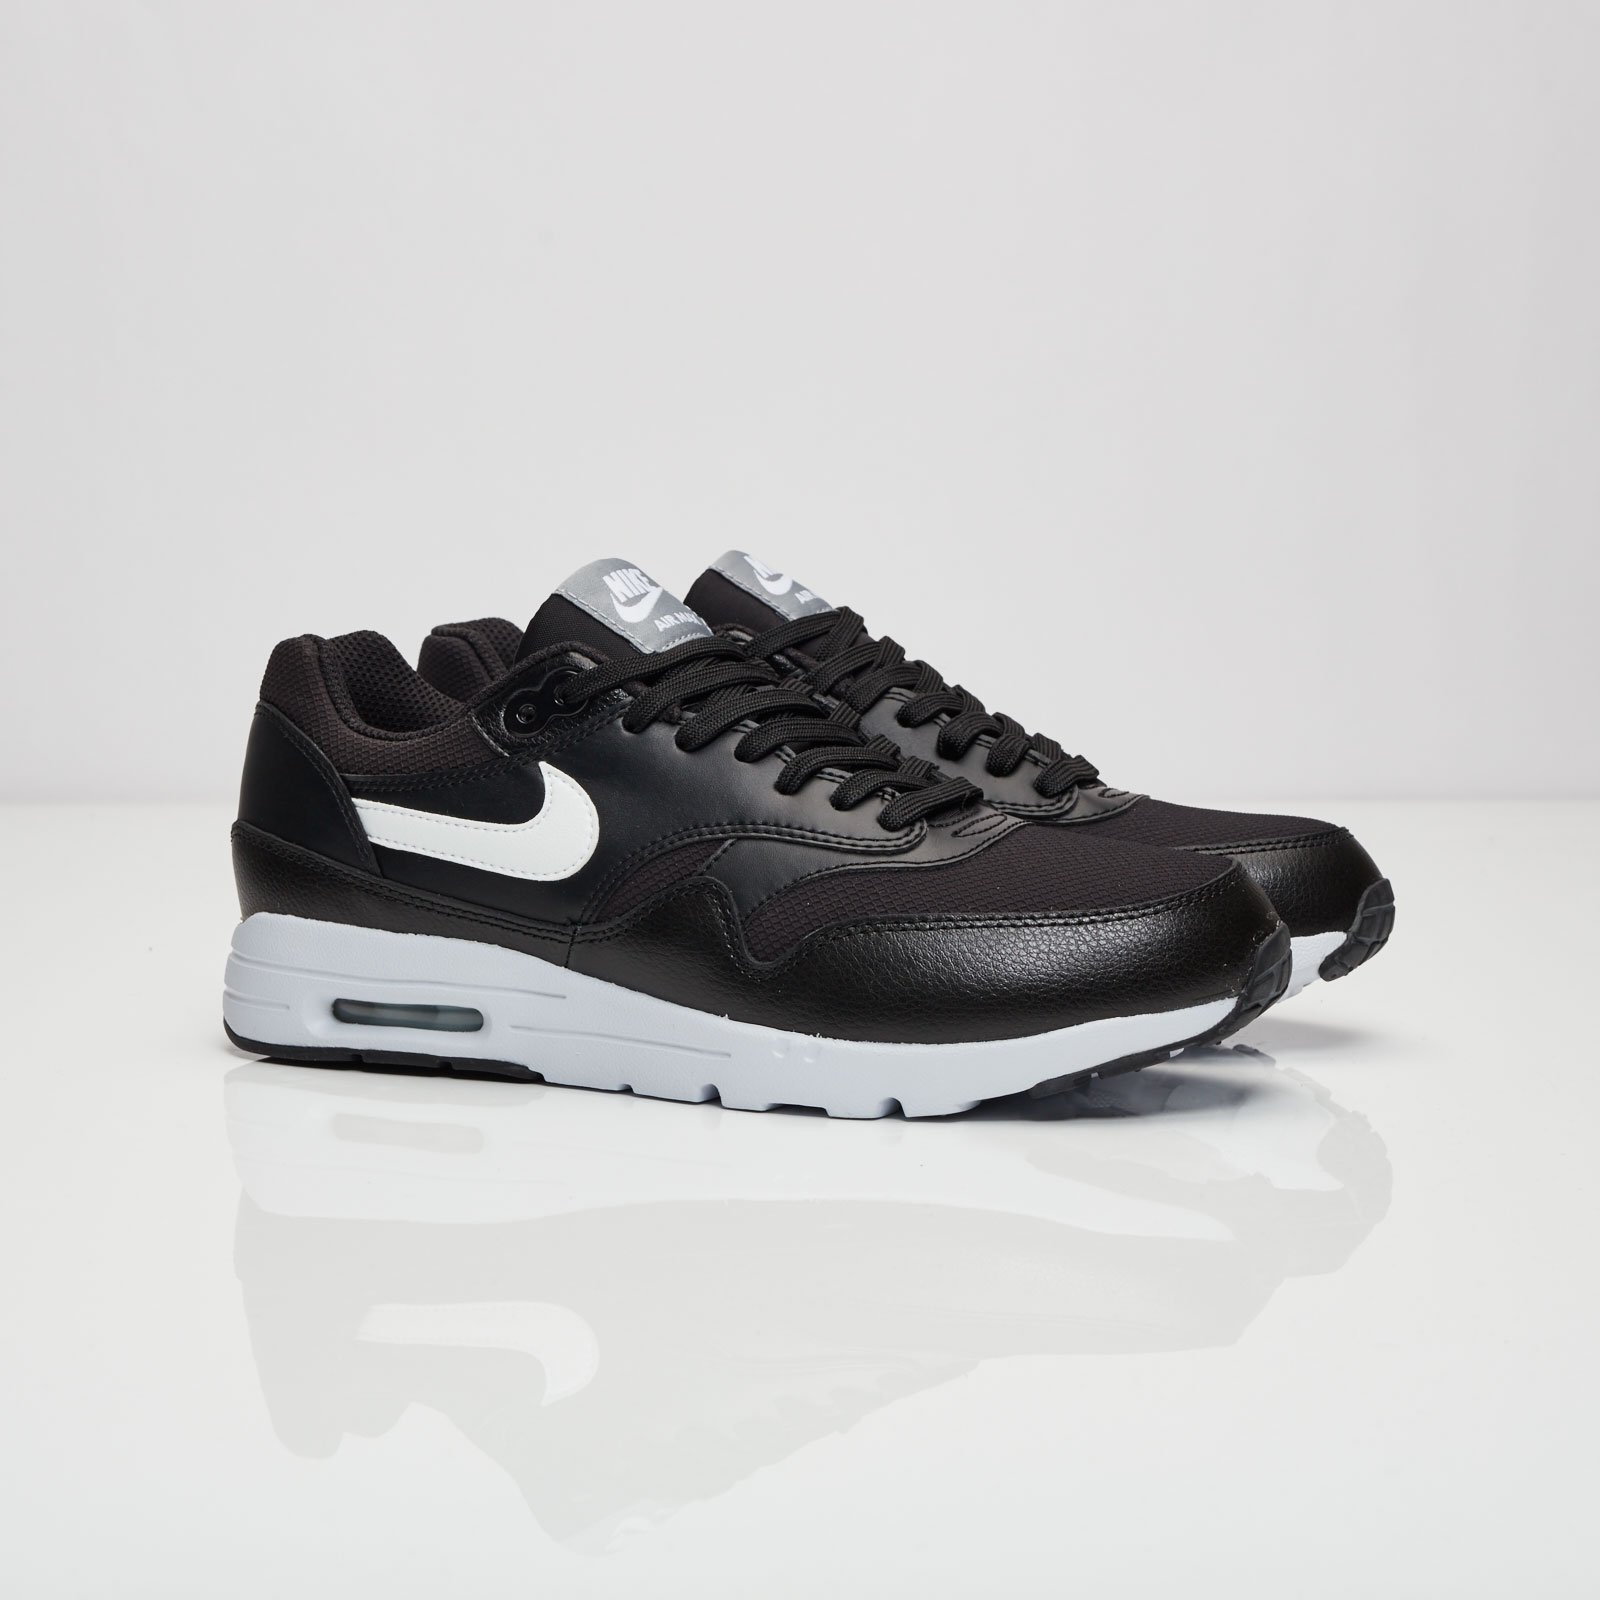 Nike Air Max 1 Ultra Essential 704993 007 Sneakersnstuff